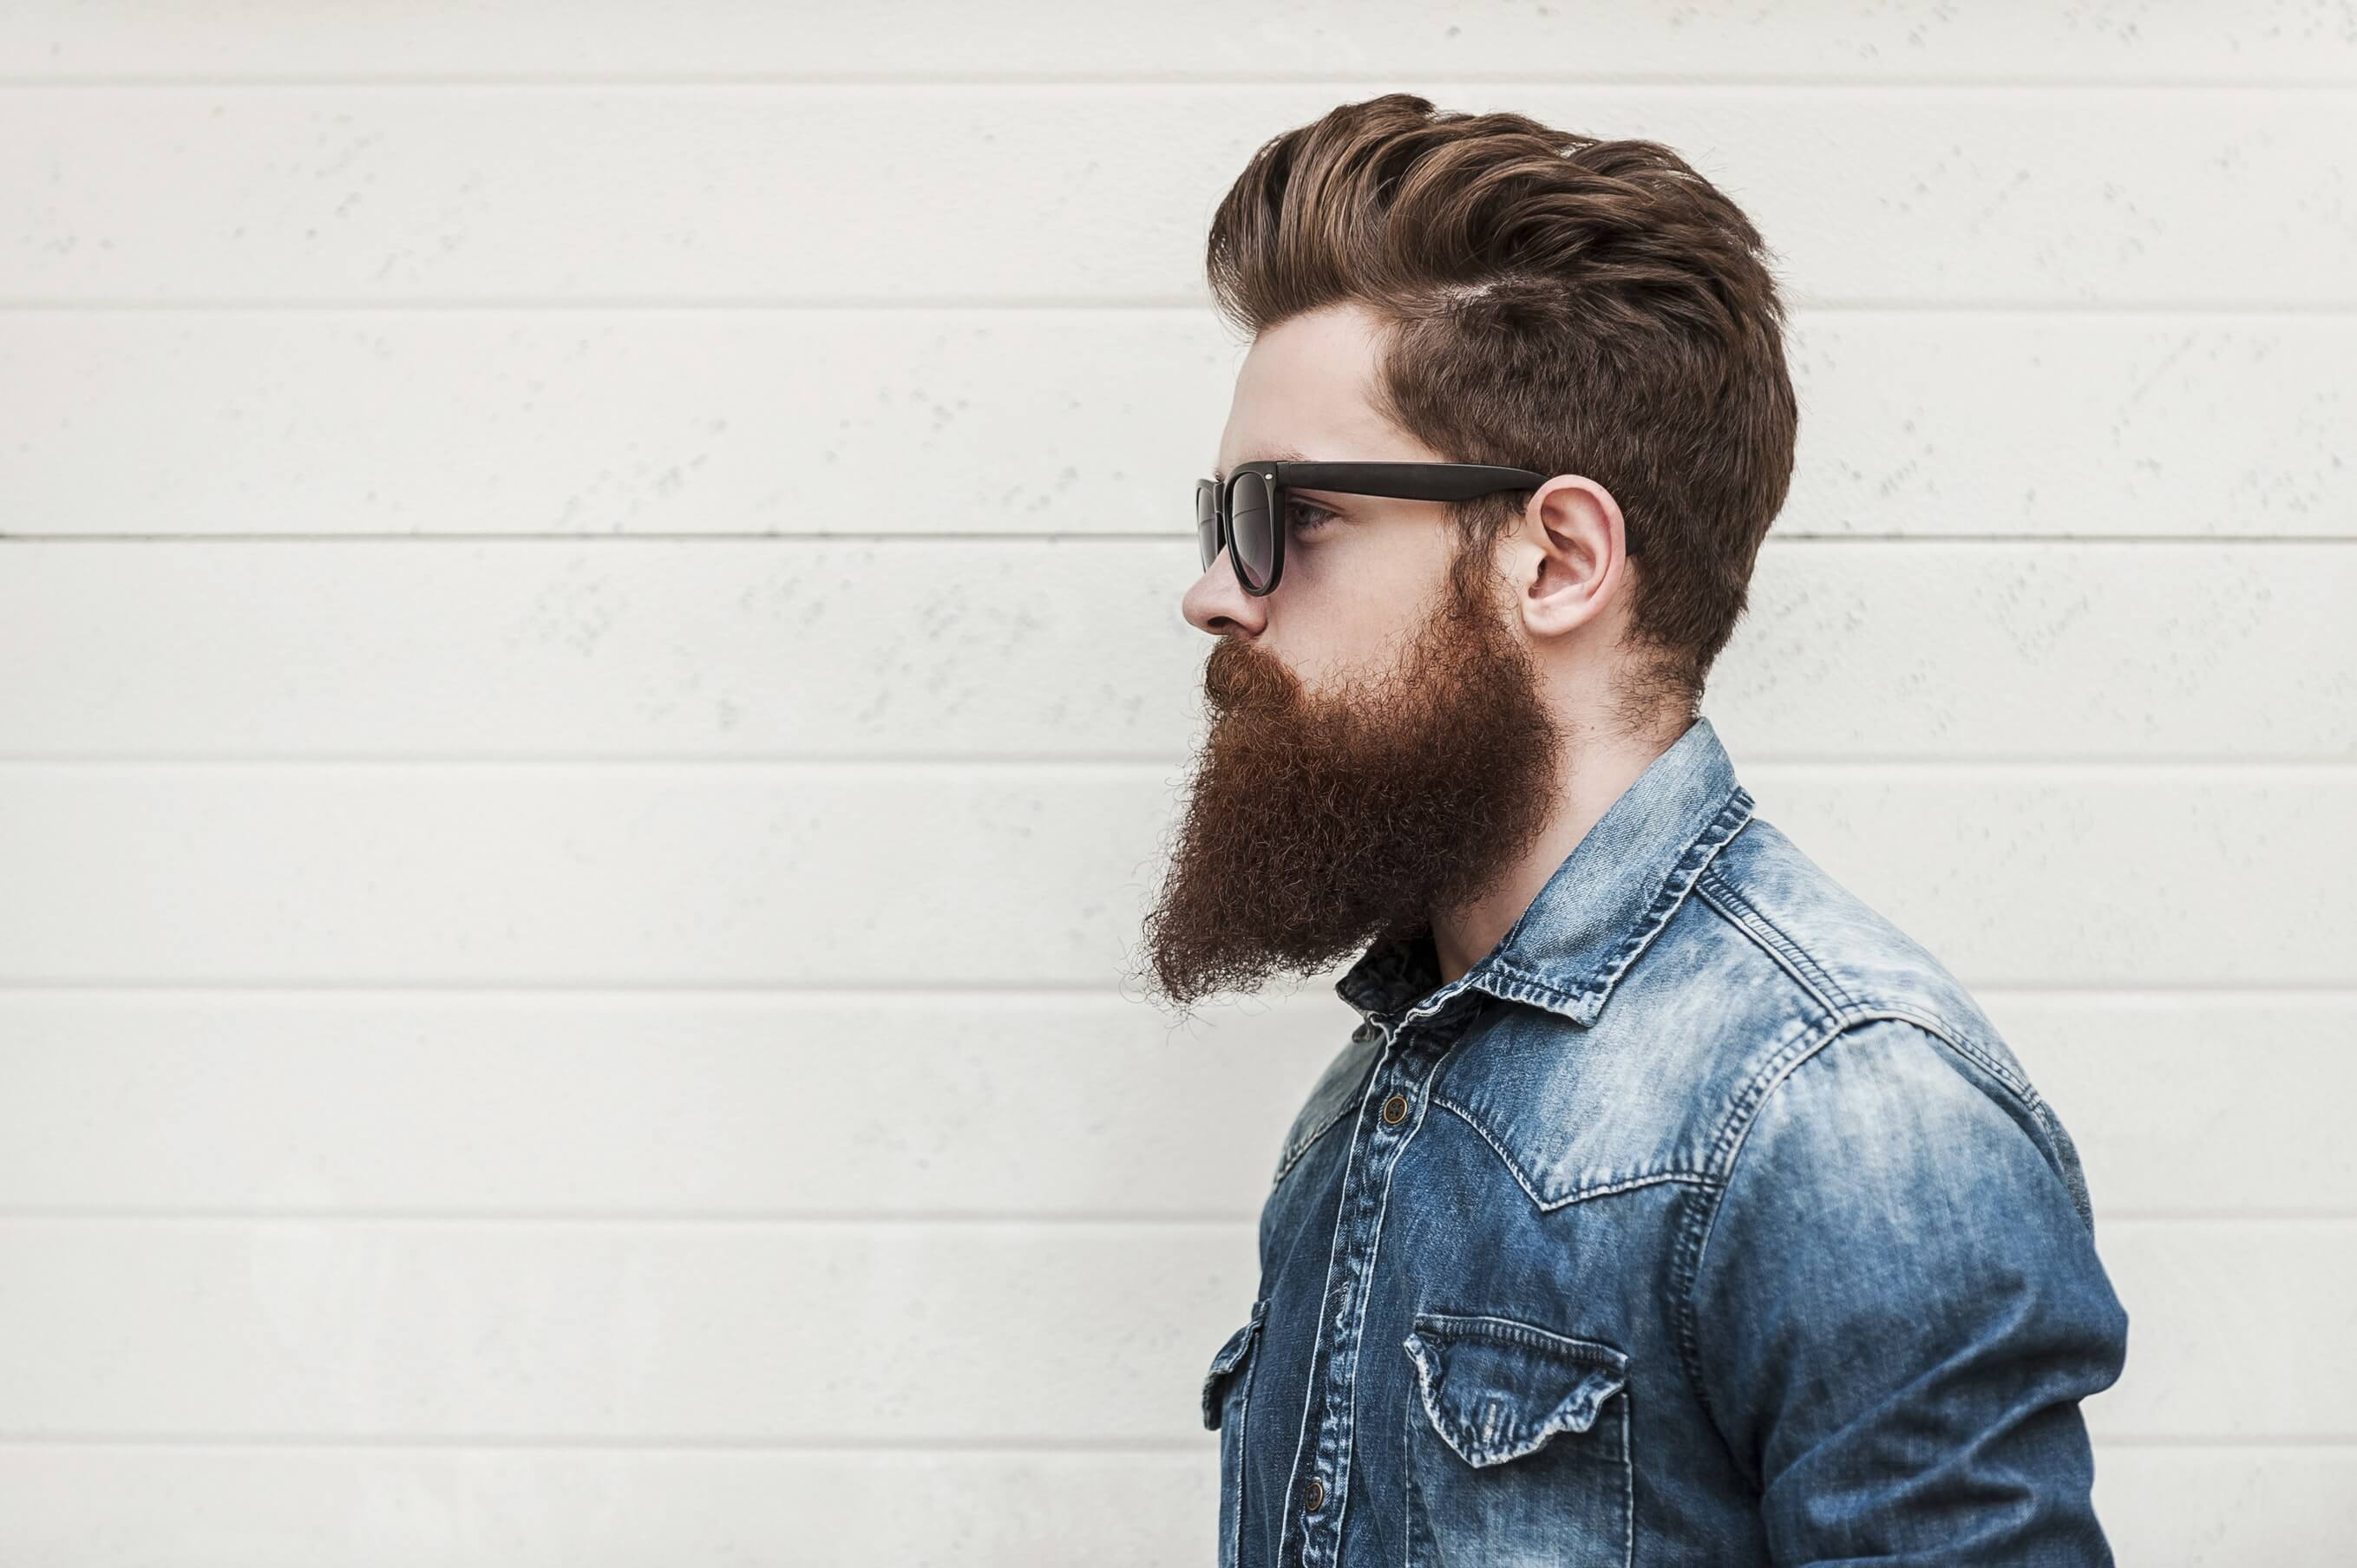 Peachy 5 Styling Tricks To Make Your Taper Fade Haircut Unique Short Hairstyles Gunalazisus